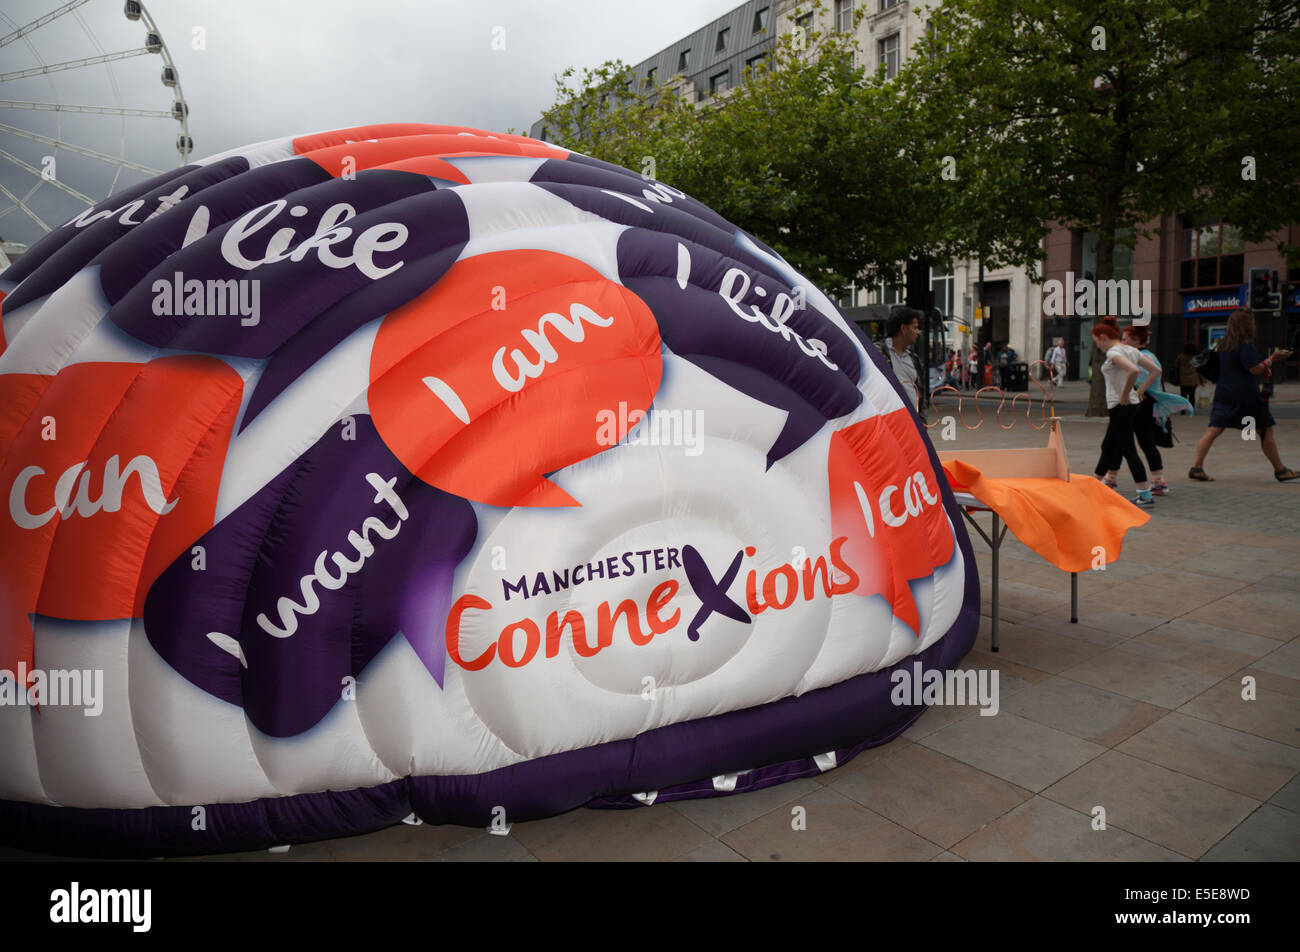 Connexions branded logo marketing campaign using domed Inflatable in temporary structures in Manchester City Centre. - Stock Image